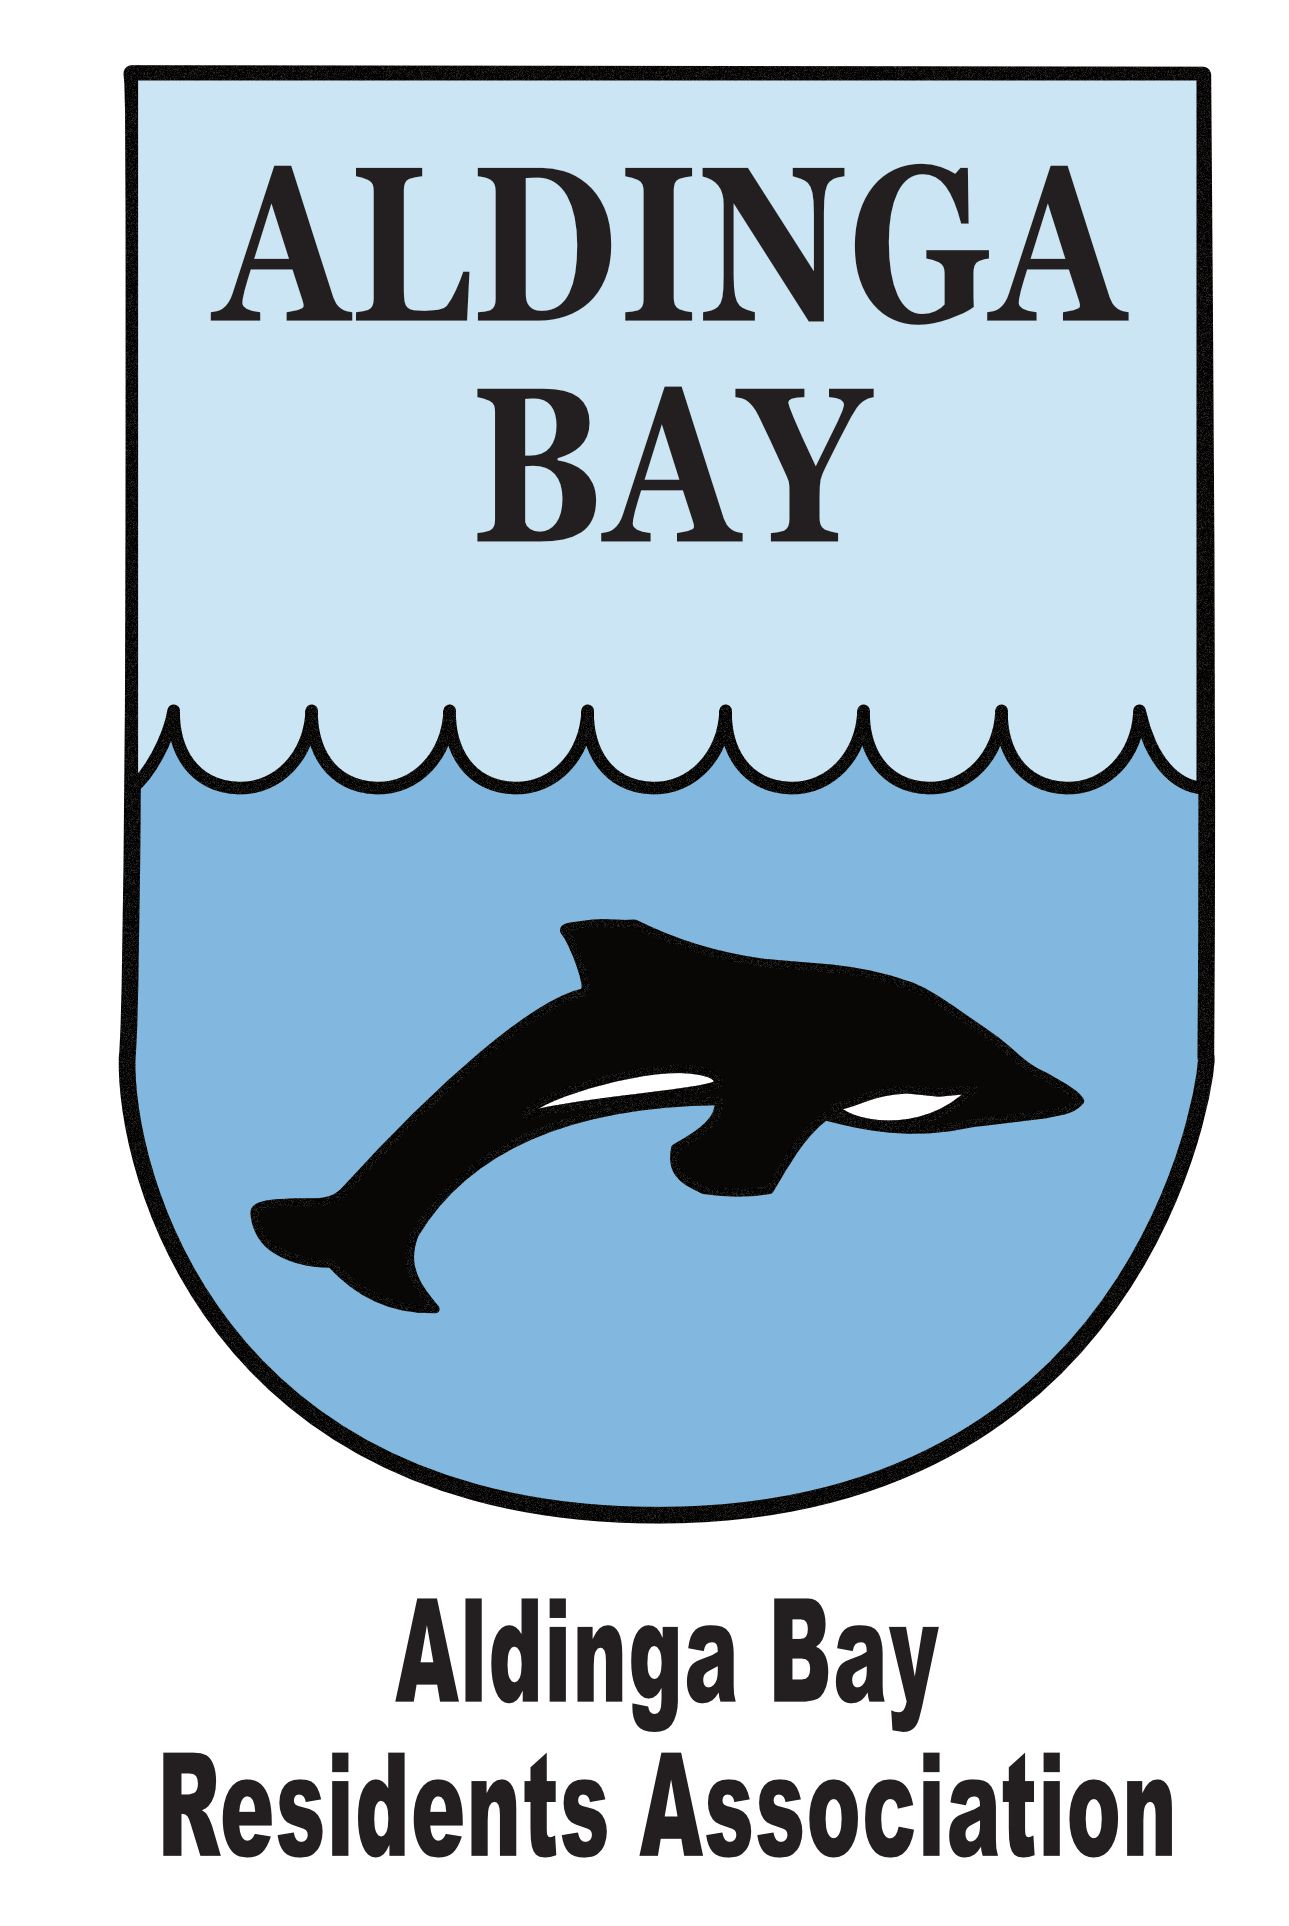 Alidnga Bay Residents Association